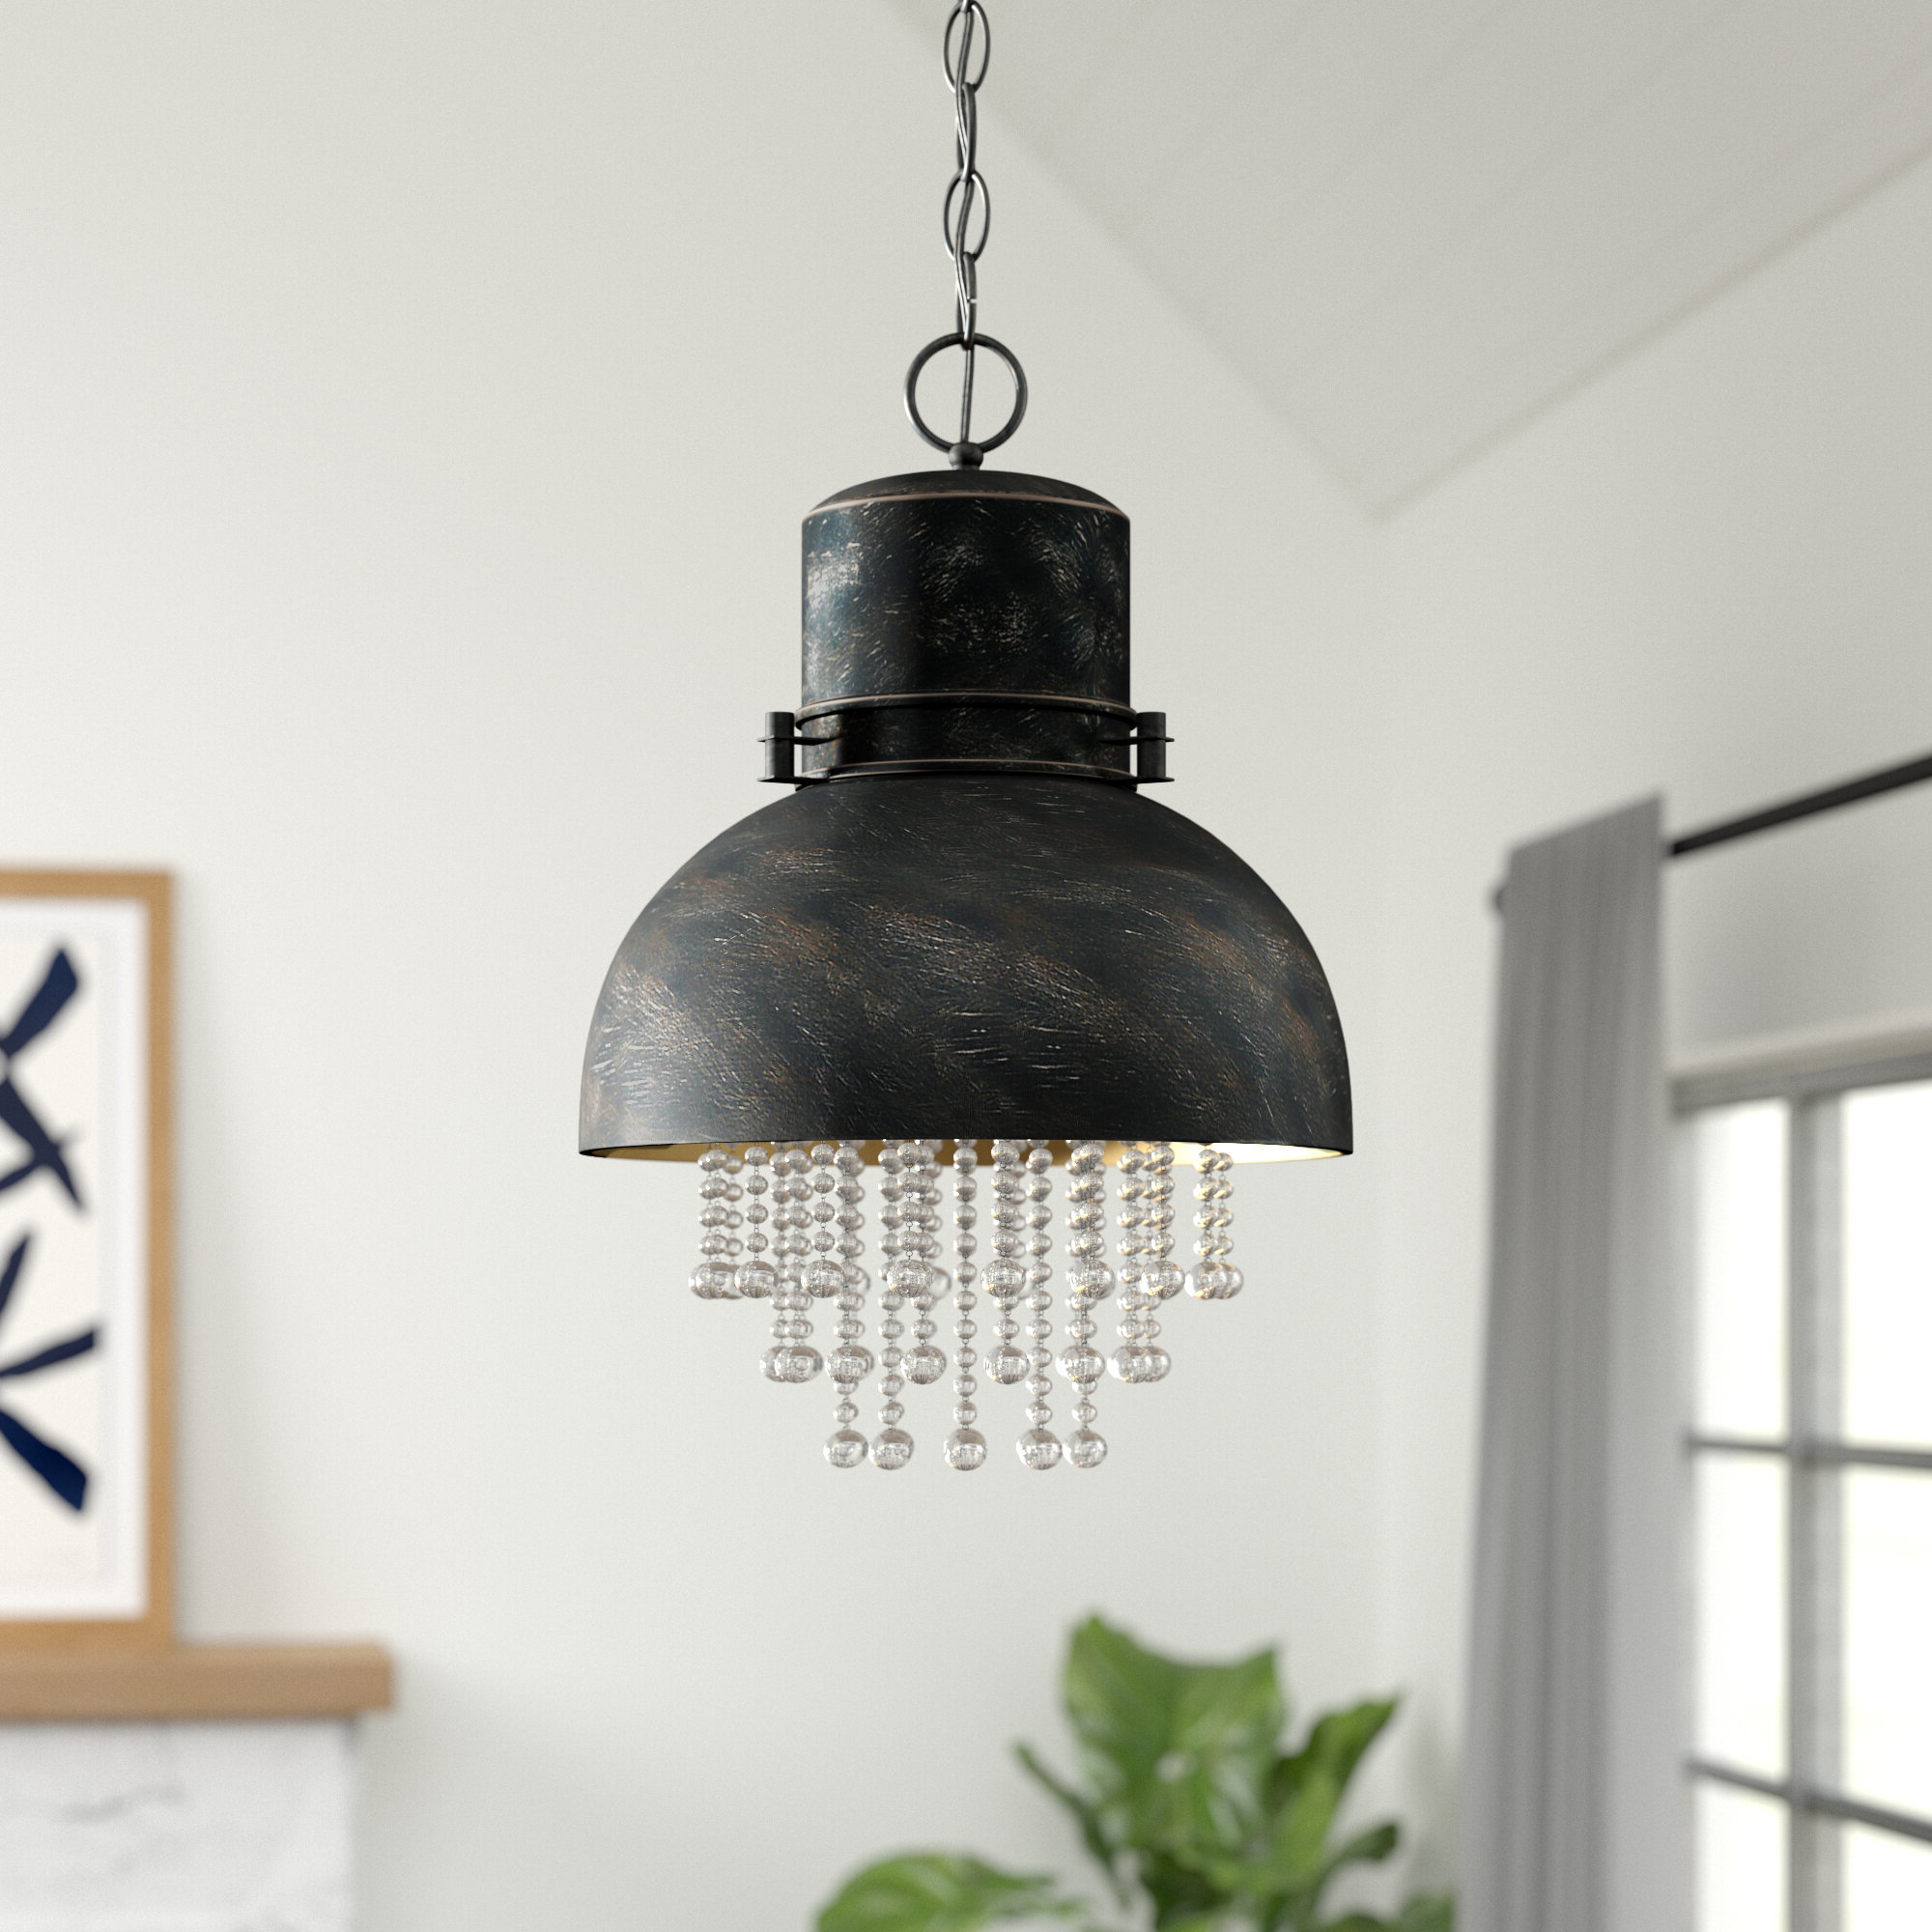 Monadnock 1 Light Single Dome Pendant Regarding Widely Used Monadnock 1 Light Single Dome Pendants (Gallery 1 of 20)